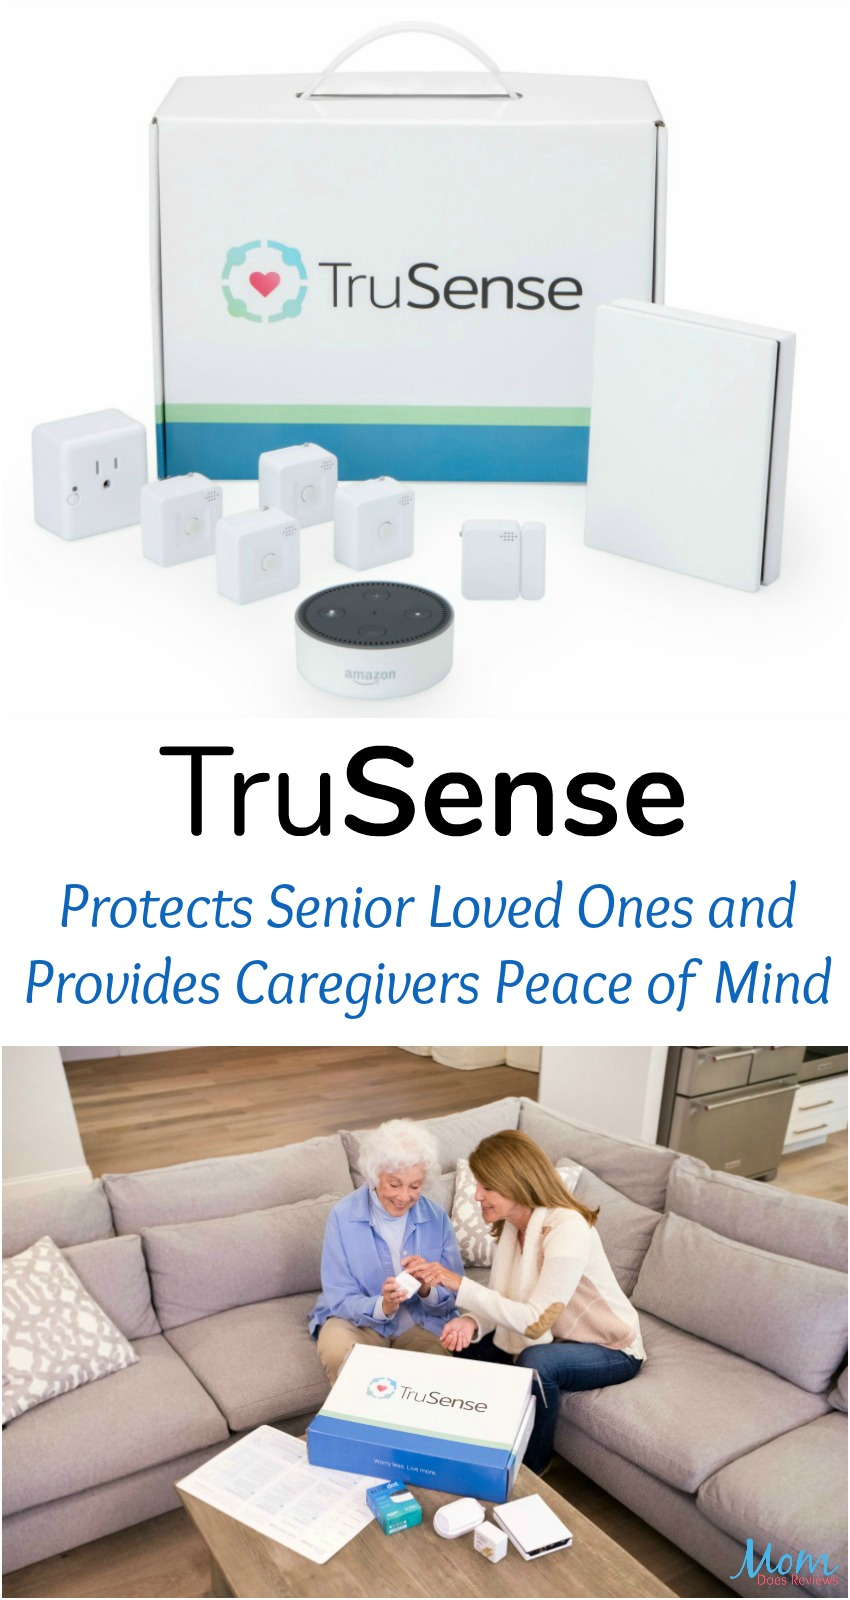 TruSense Protects Senior Loved Ones and Provides Caregivers Peace of Mind